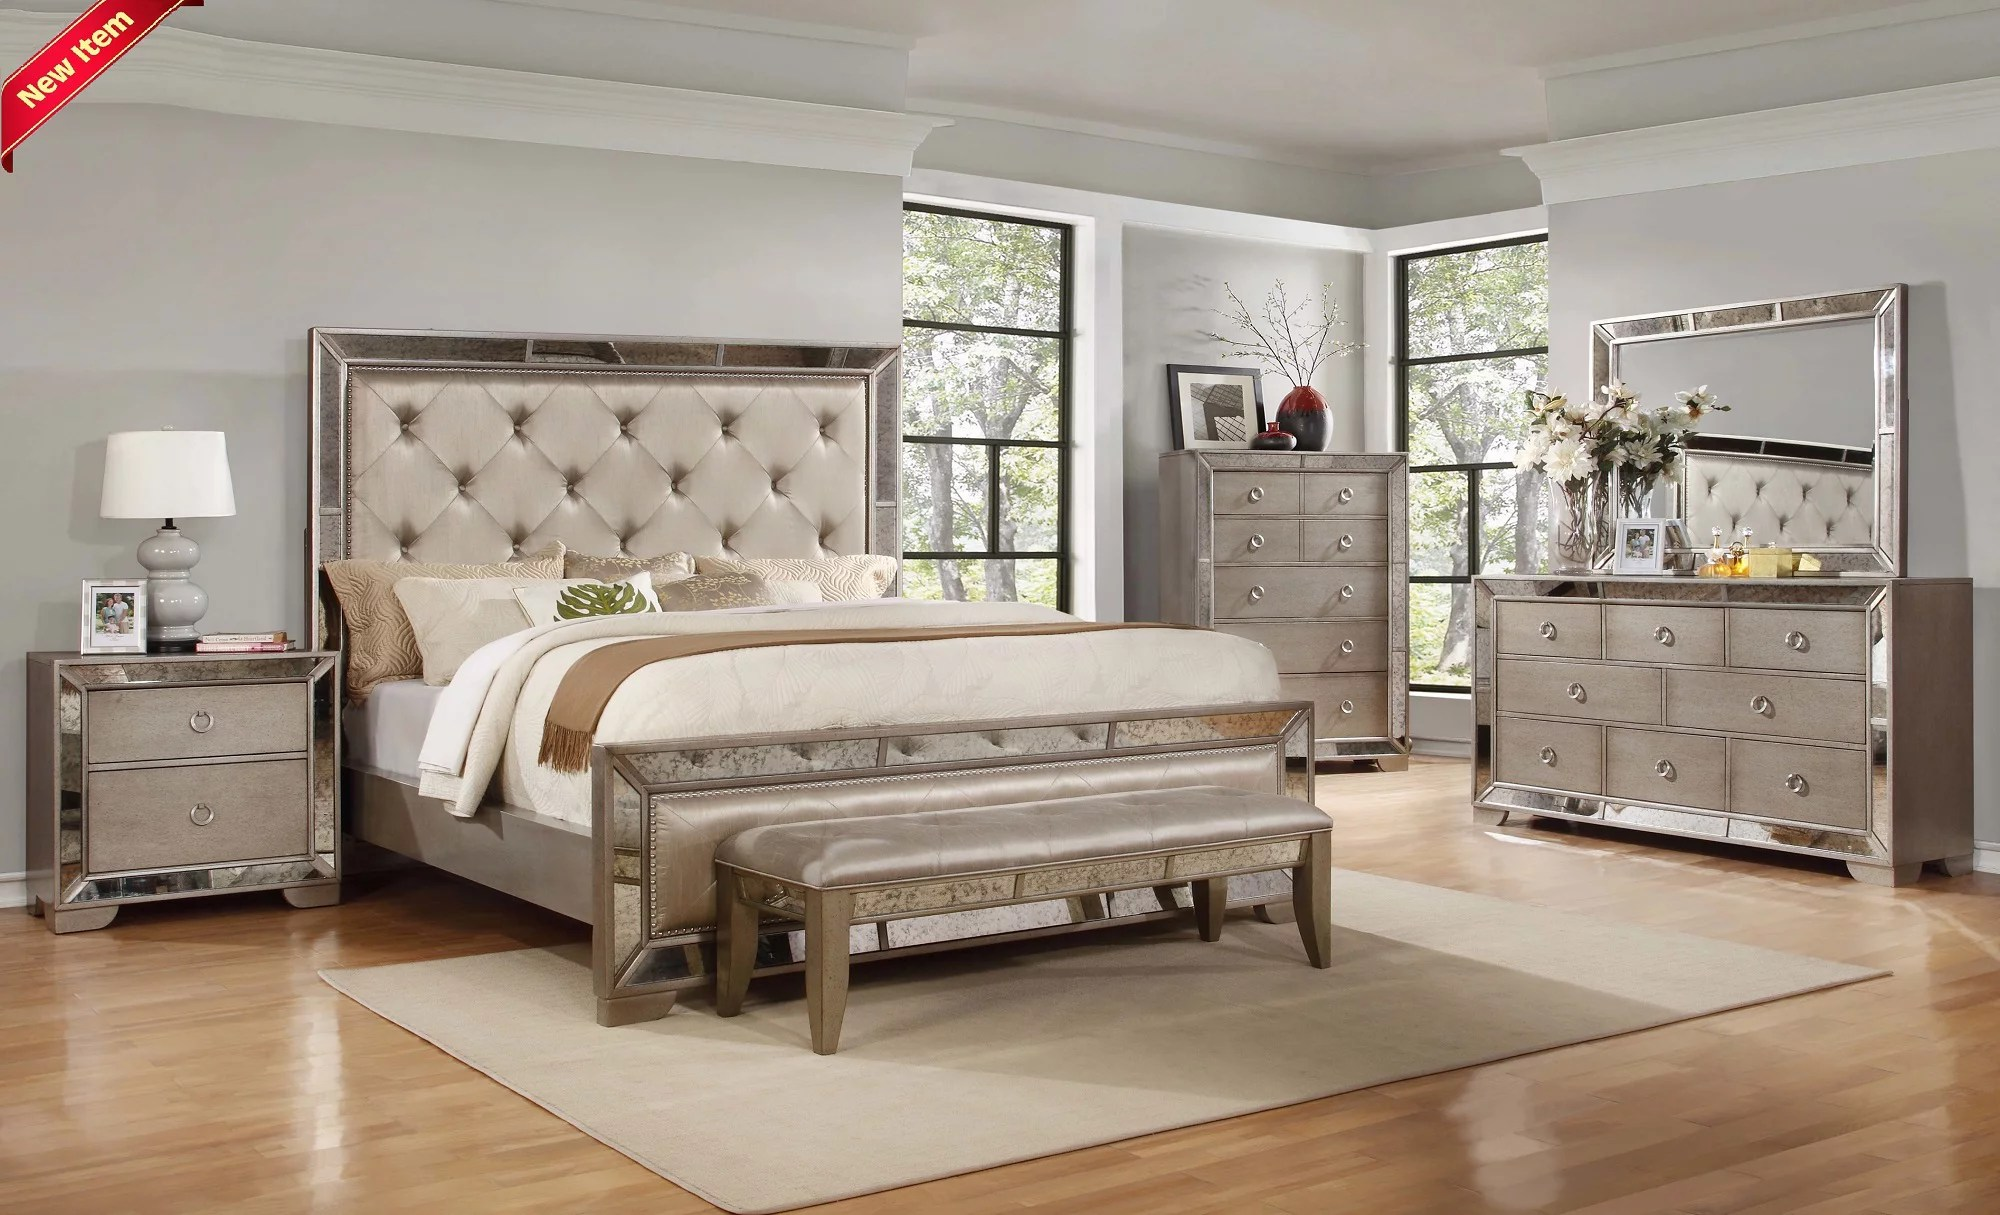 classic contemporary ava bedroom collection silver bronze antiqued mirrored finish queen size bed 4pc set tufted headboard dresser mirror nightstand